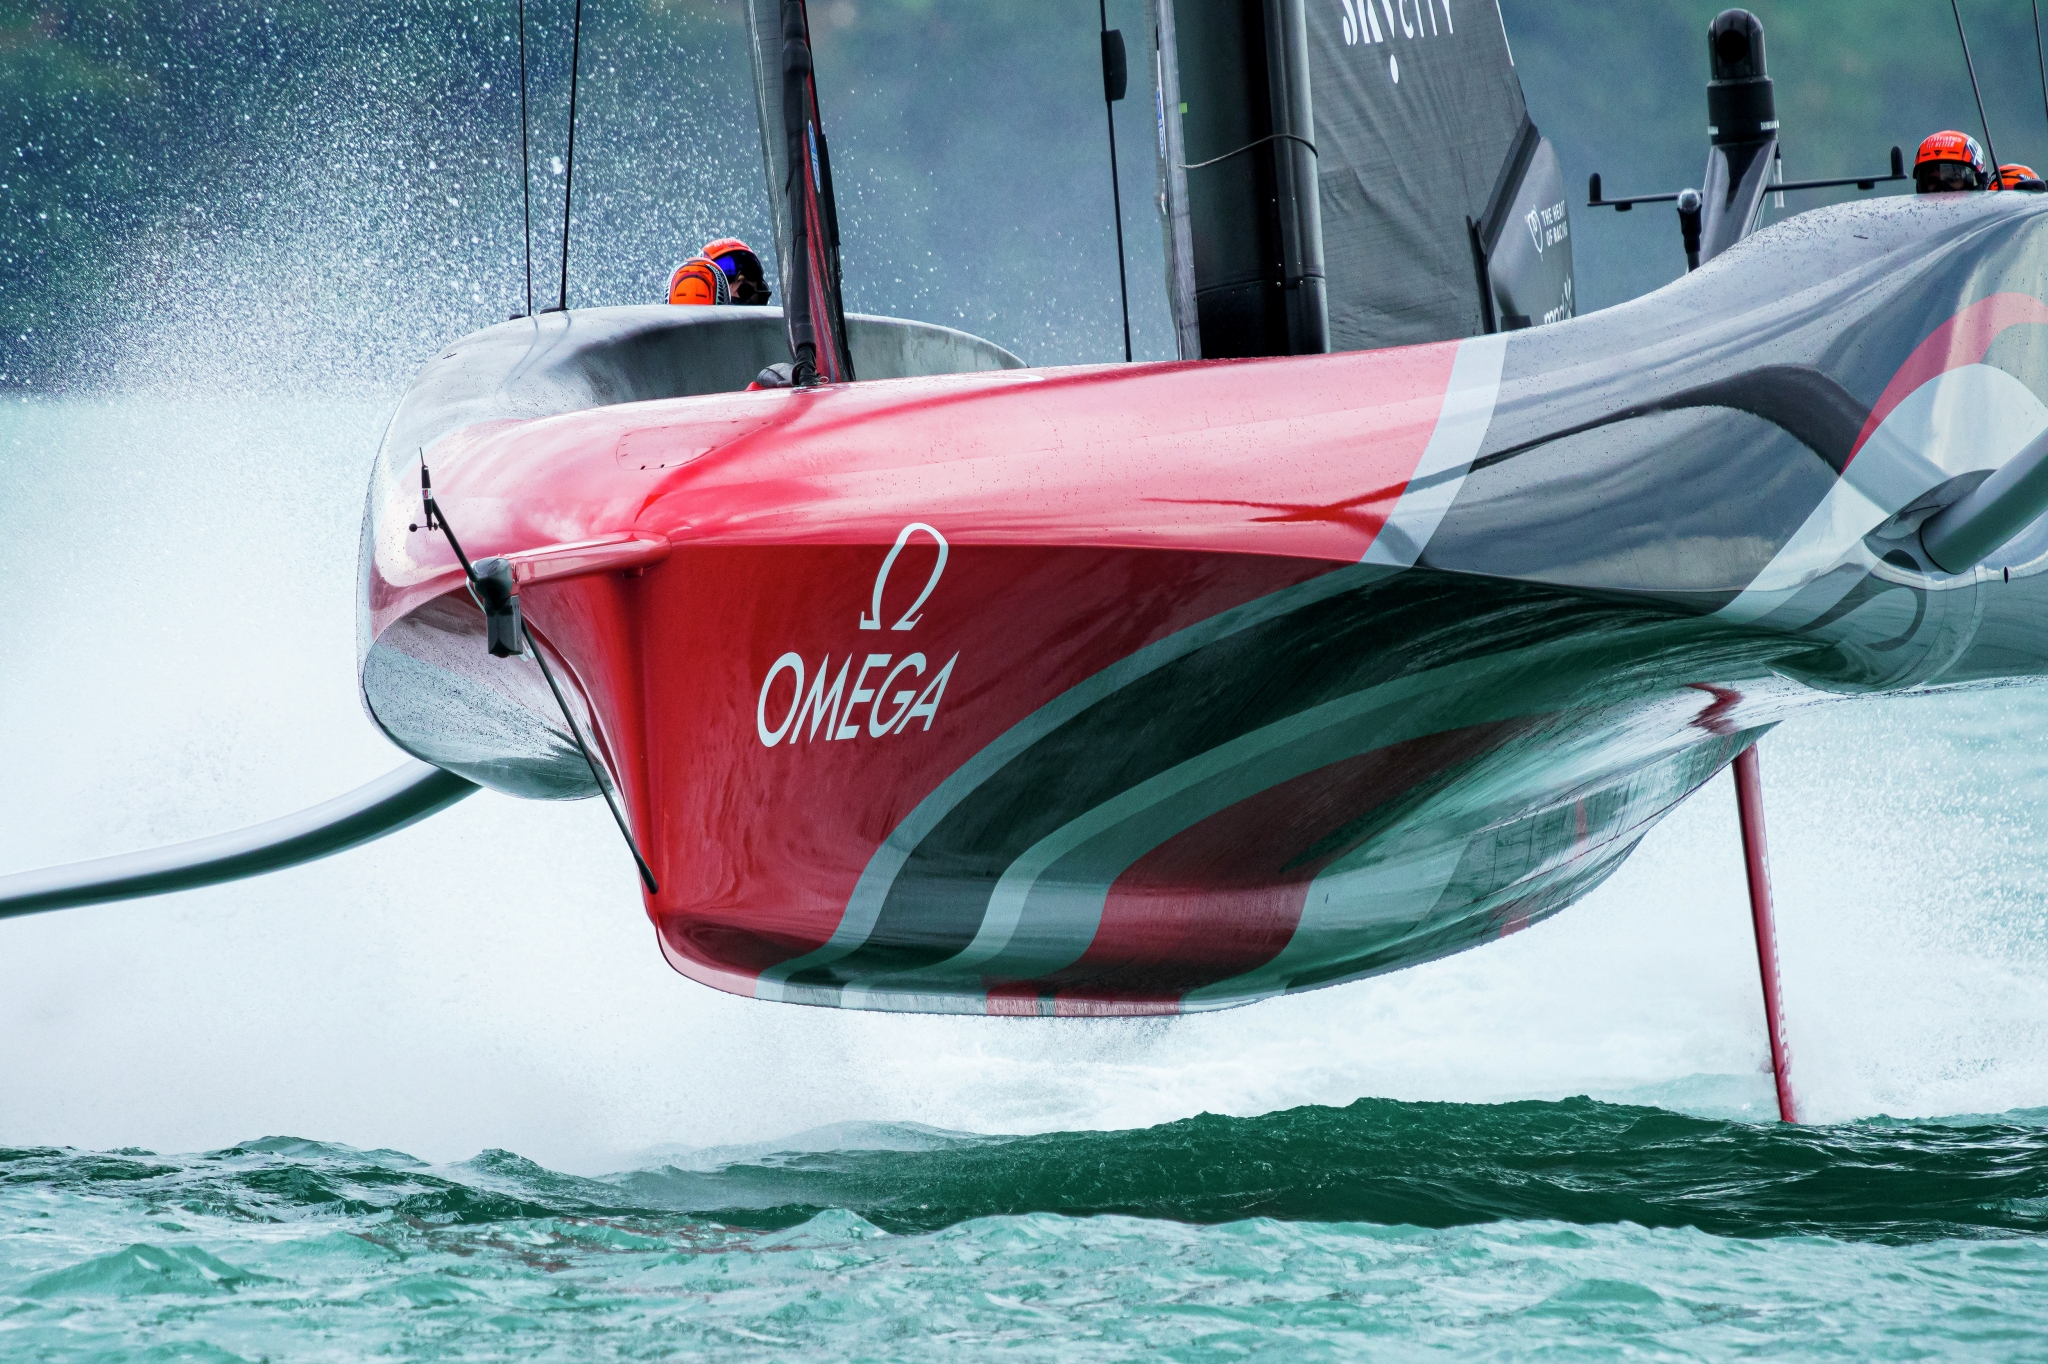 10/03/21 - Auckland (NZL) 36th America's Cup presented by Prada America's Cup Match - Race Day 1 Emirates Team New Zealand